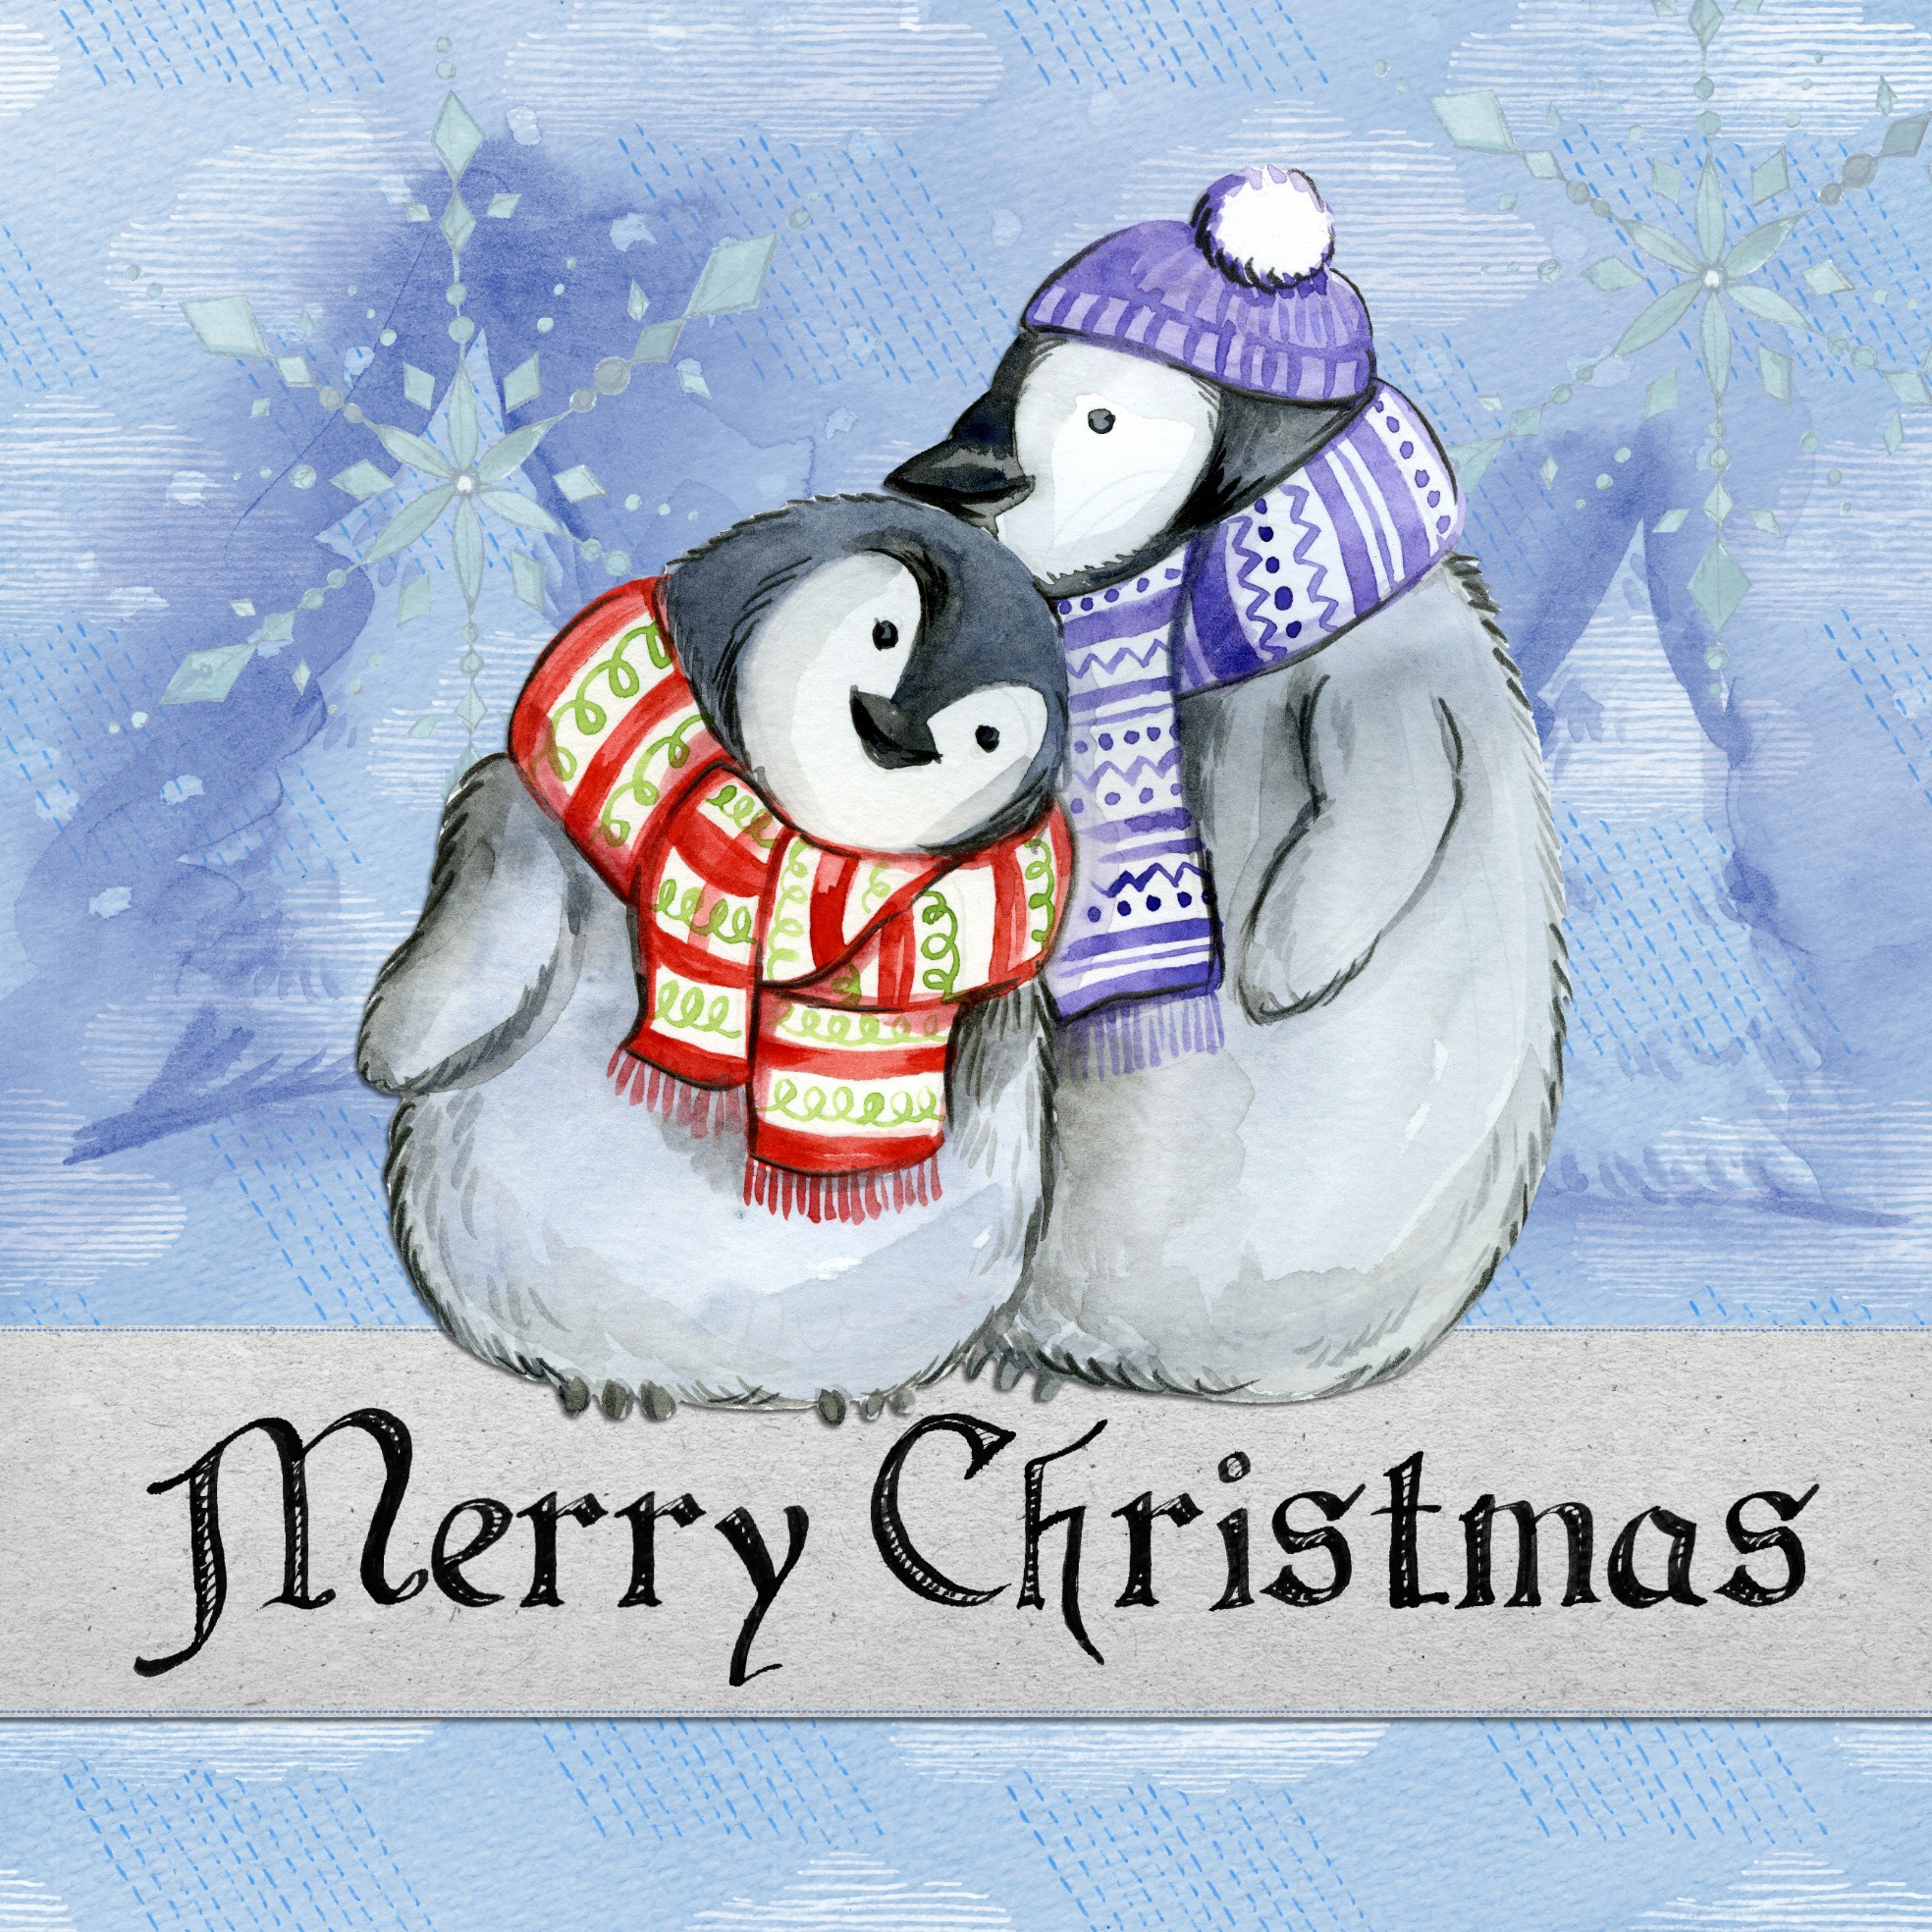 merry christmas, penguin, card, decorative